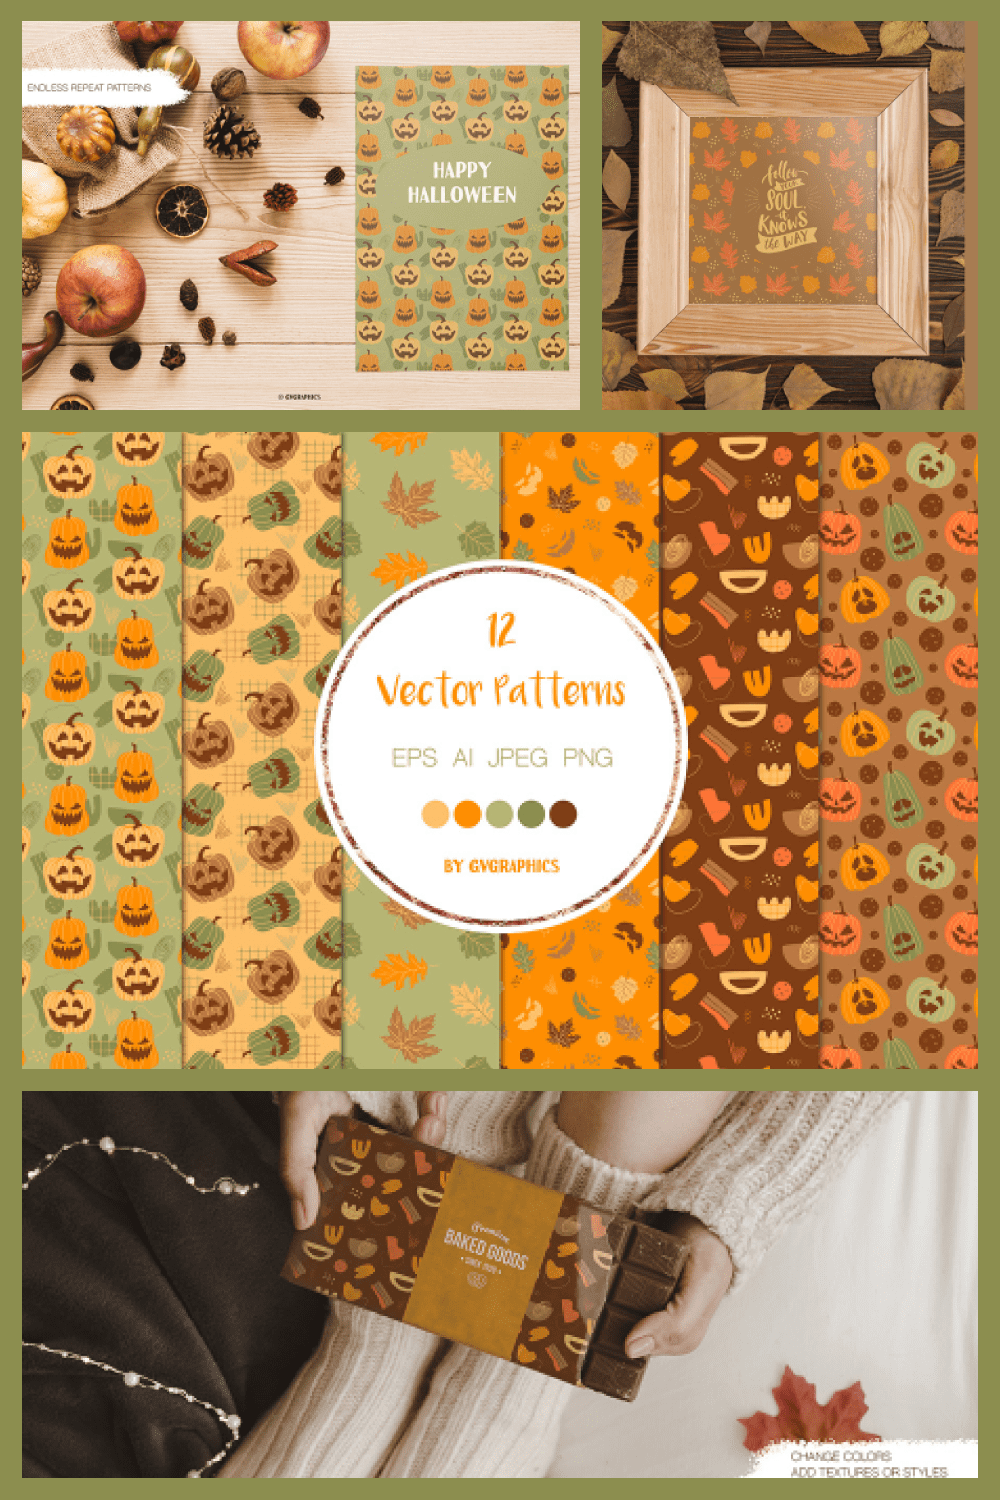 Halloween Pumpkins and Fall Leaves Vector Patterns and Seamless Tiles - MasterBundles - Pinterest Collage Image.